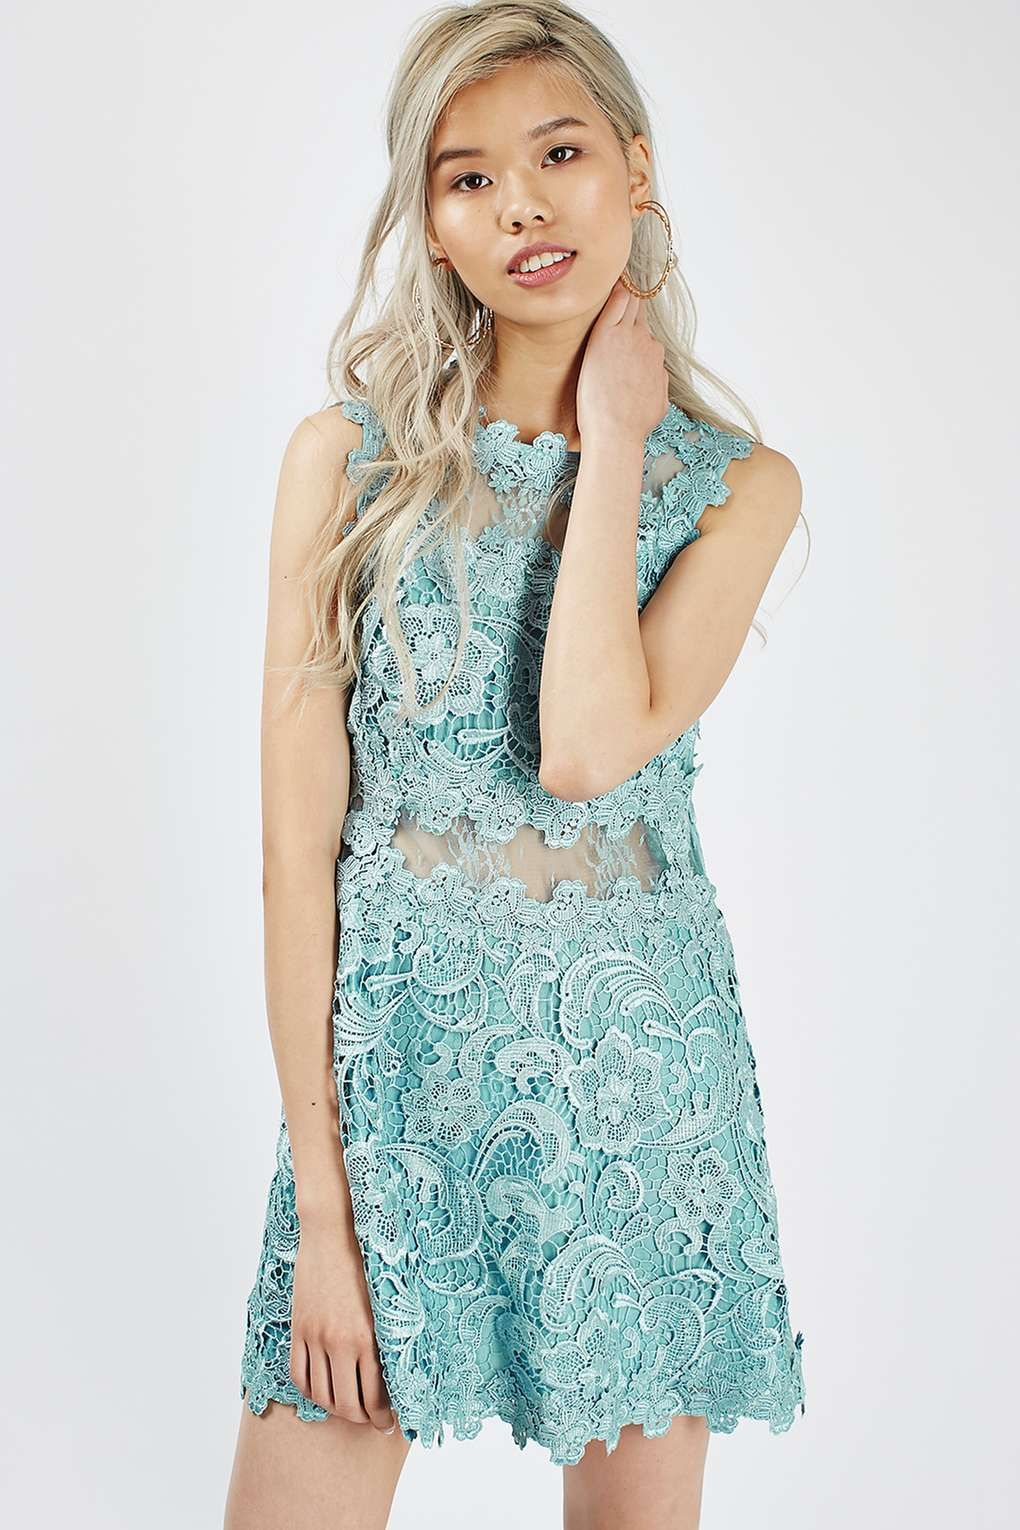 PETITE Lace Skater Dress - Dresses - Clothing | Petite and Topshop